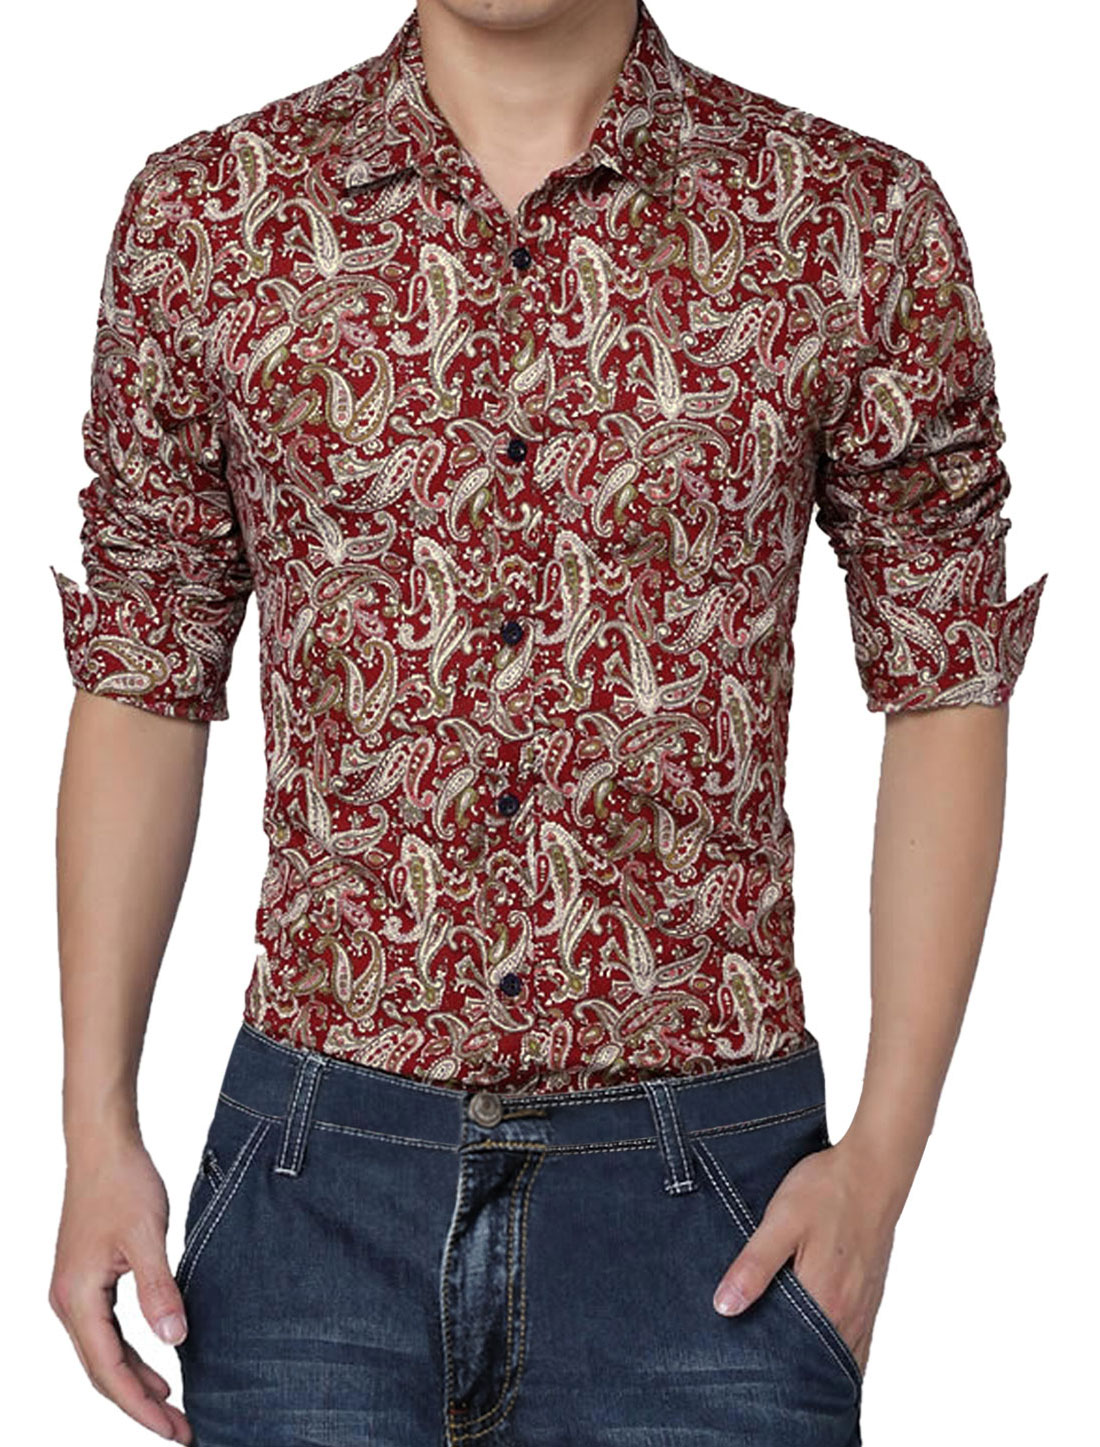 Men Paisleys Button Closure Front Casual Shirt Burgundy M